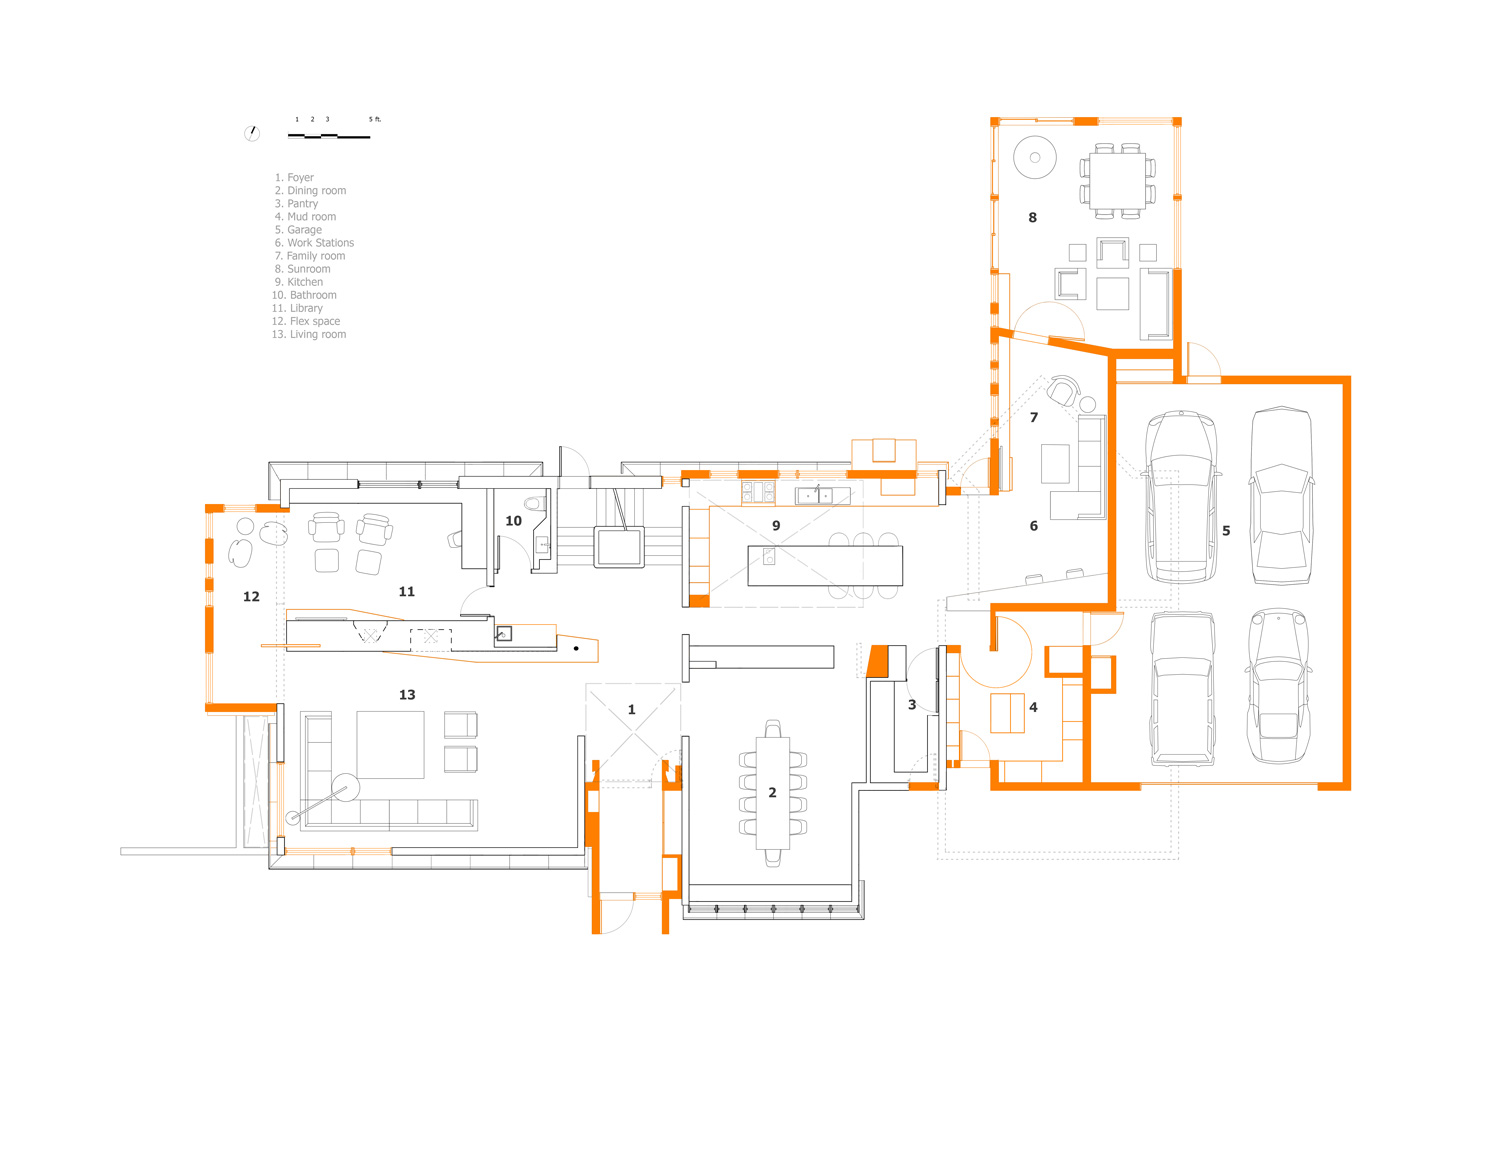 Unit 7 Architecture | Projects - Handsart Residence ZT - MAIN FLOOR PLAN